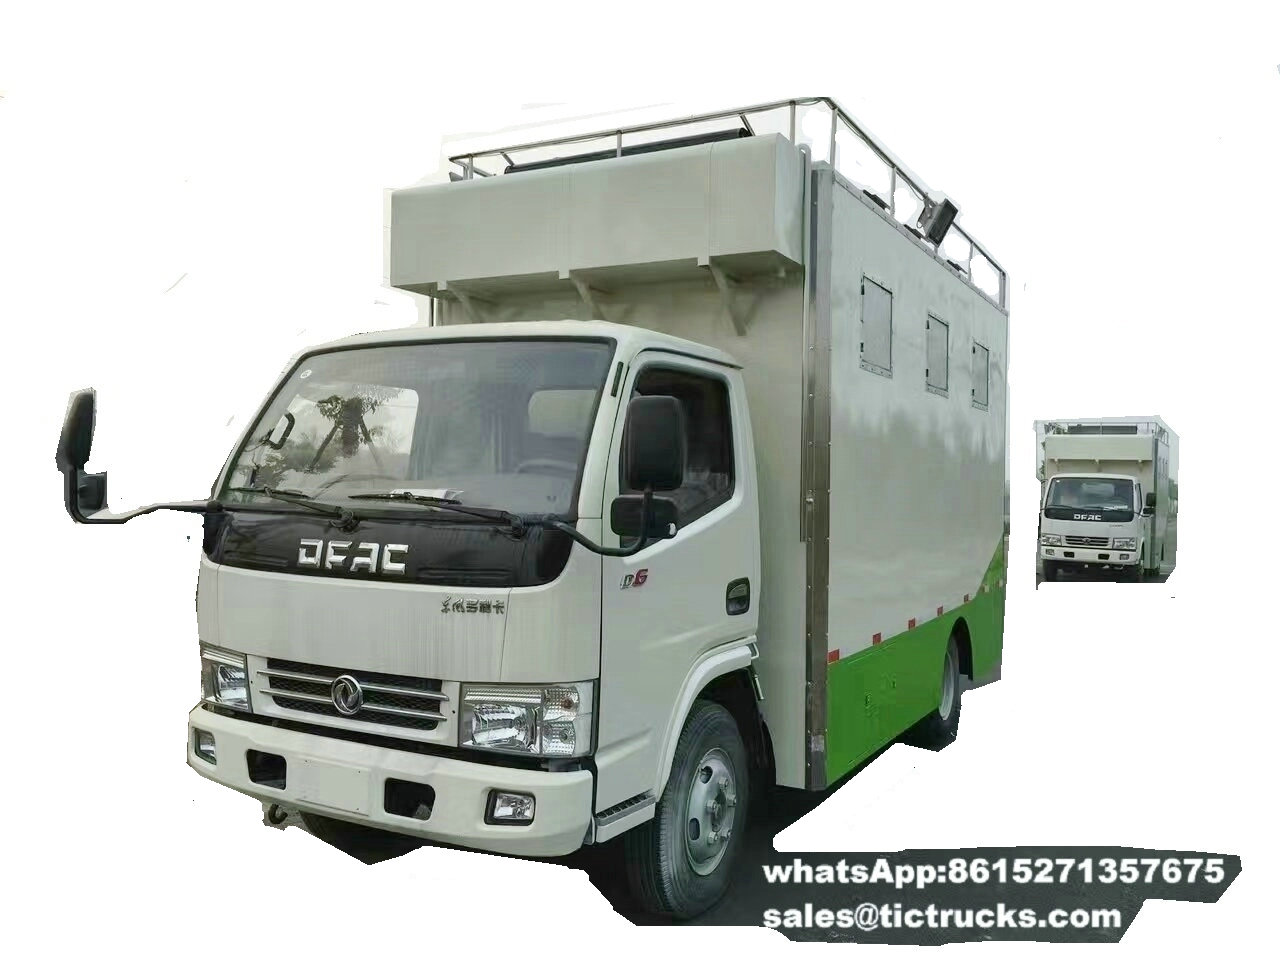 dongfeng food cooking truck-002-_1.jpg